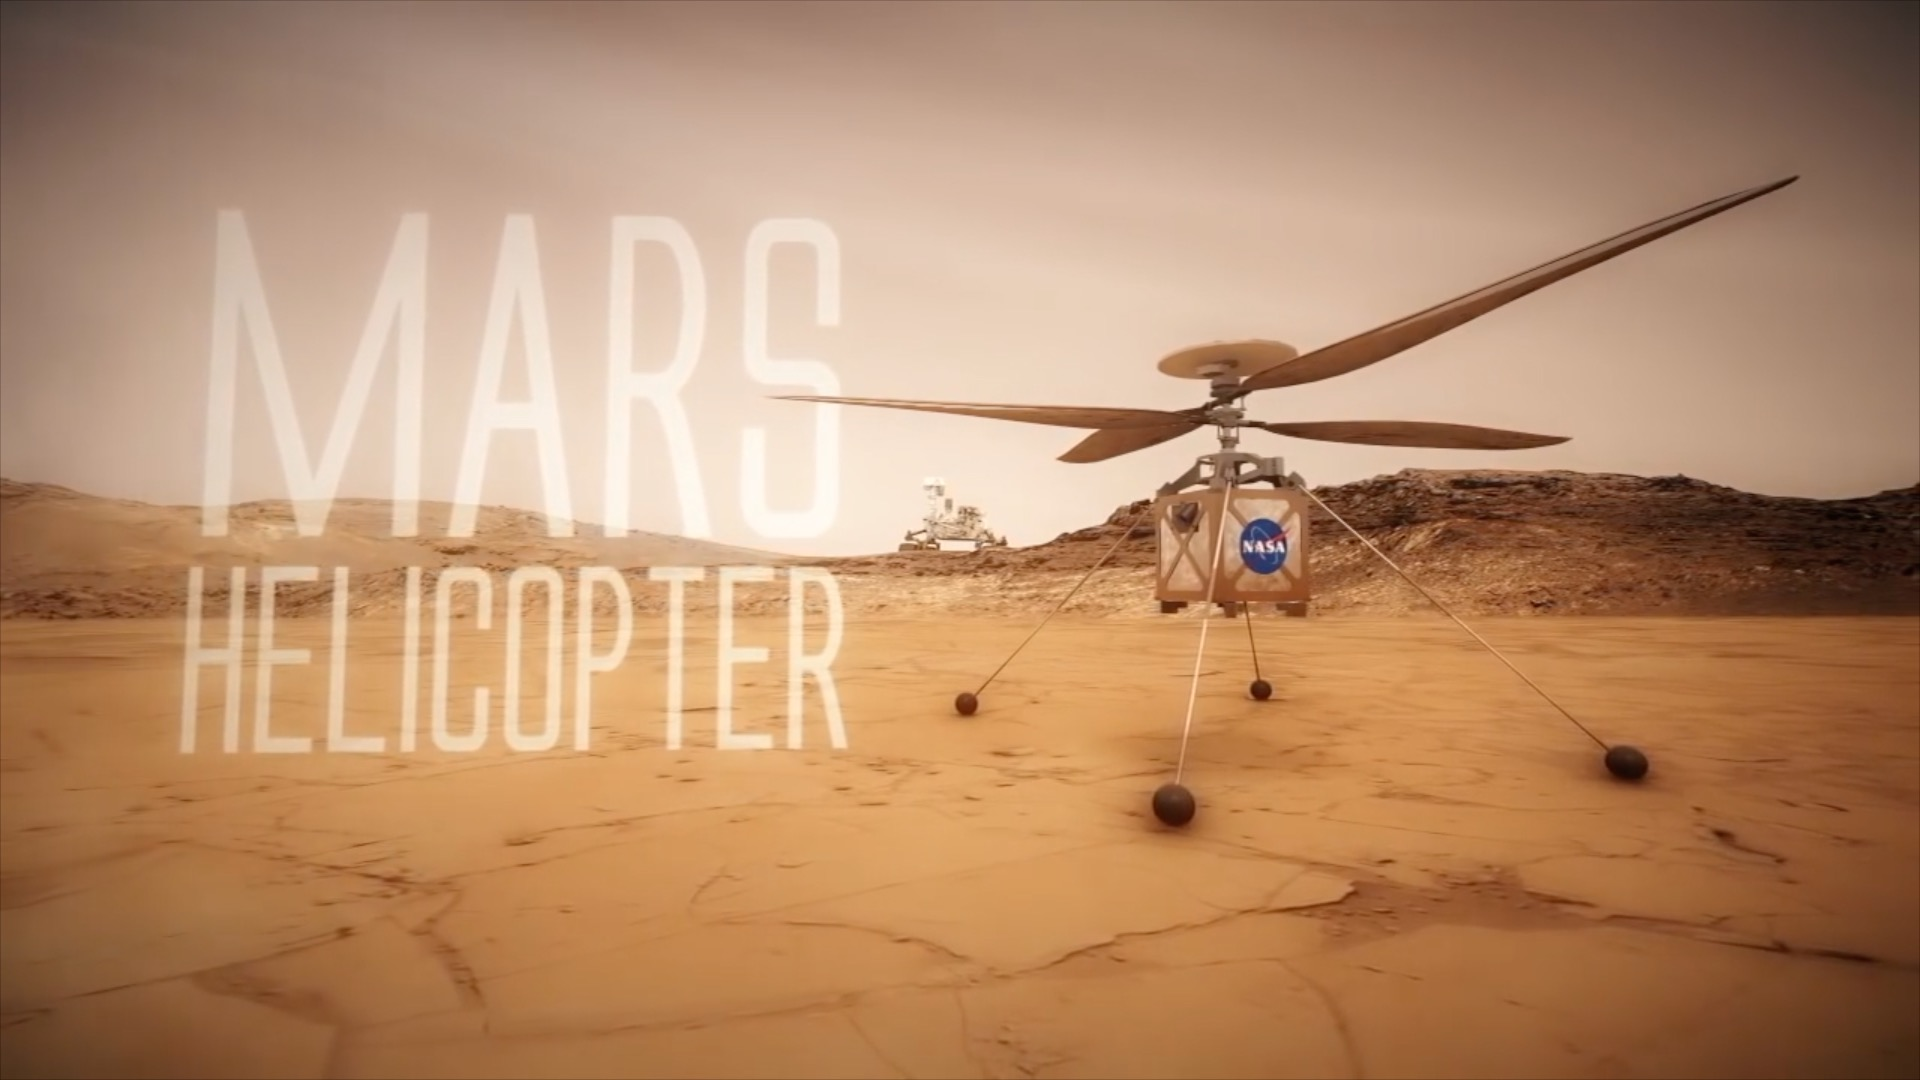 Airbus is designing a rover that will retrieve Martian samples